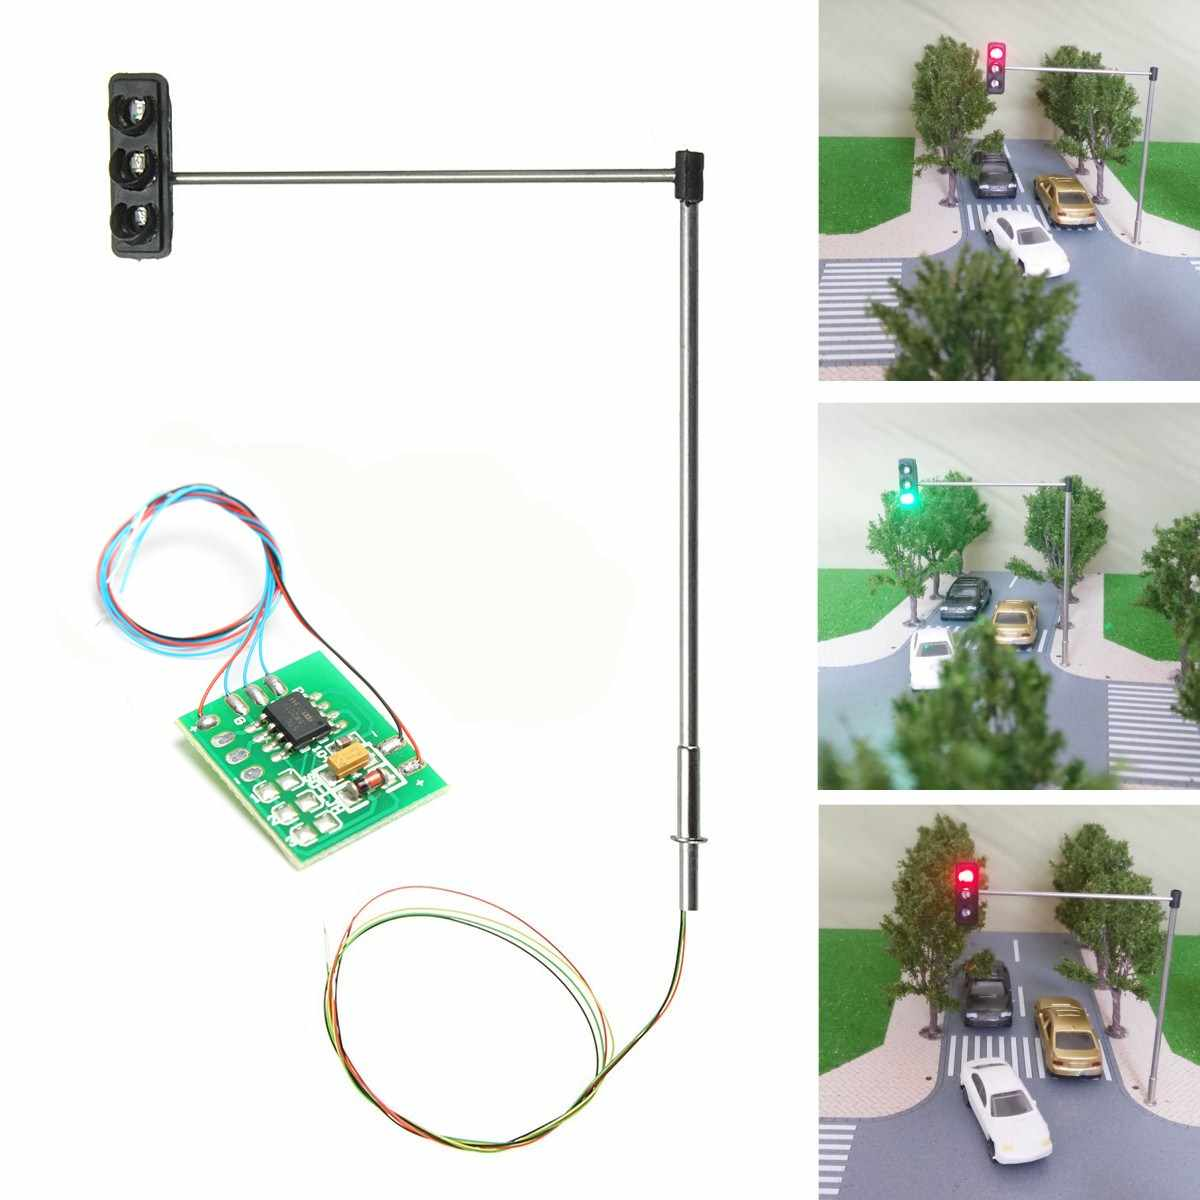 5V 60MA 3-color Traffic Light Signal HO OO LED Model HO Scale Train railway modeling+ Circuit Board